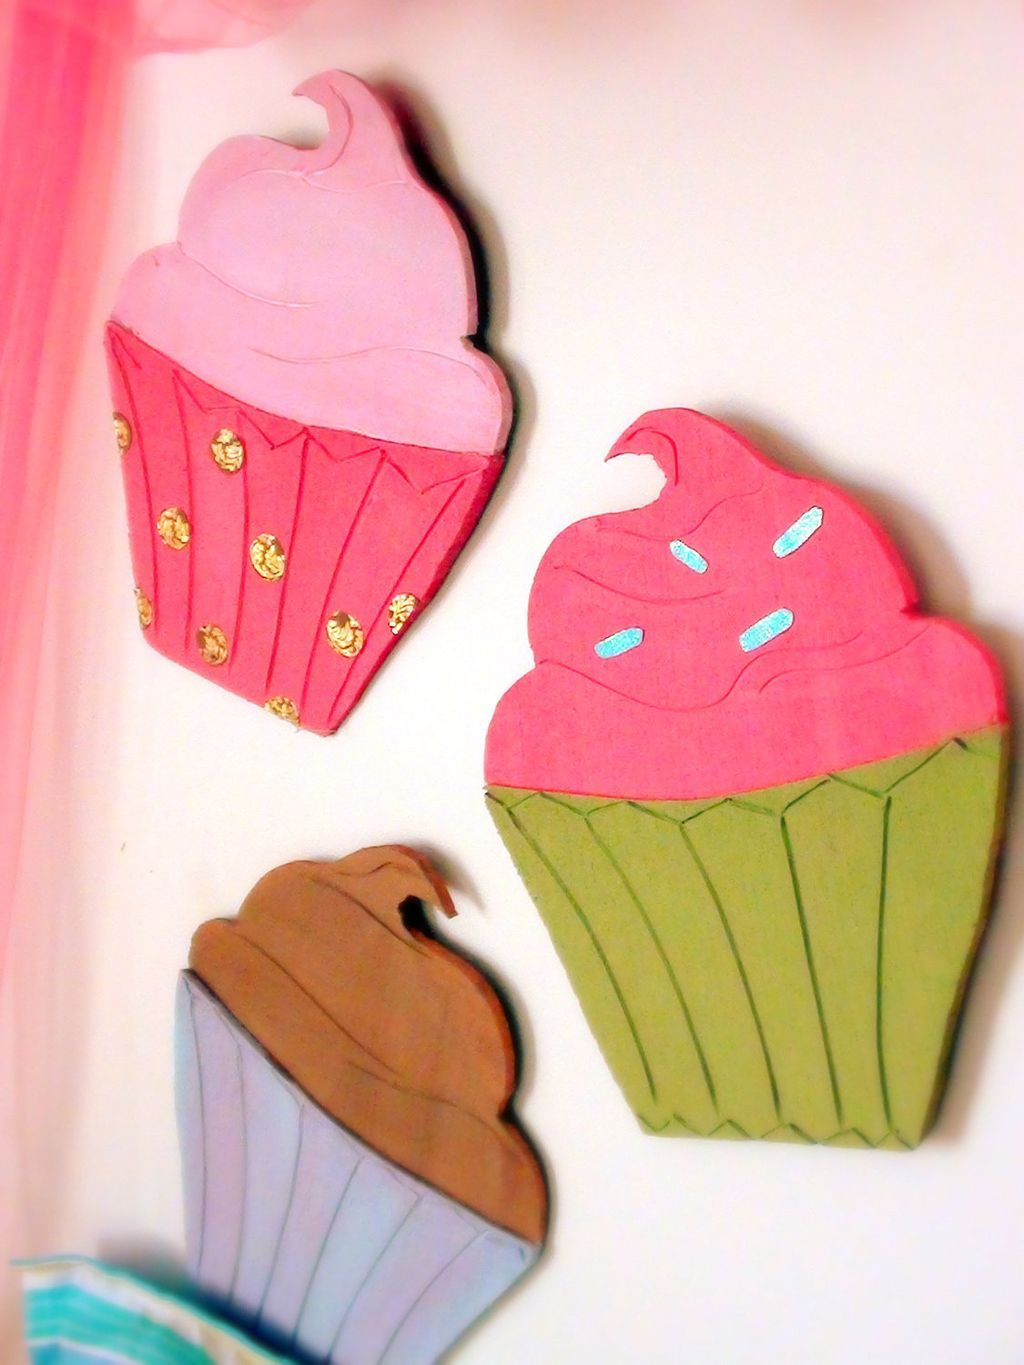 40 Cupcakes Themed For Kitchen Decoration Cupcake Kitchen Decor